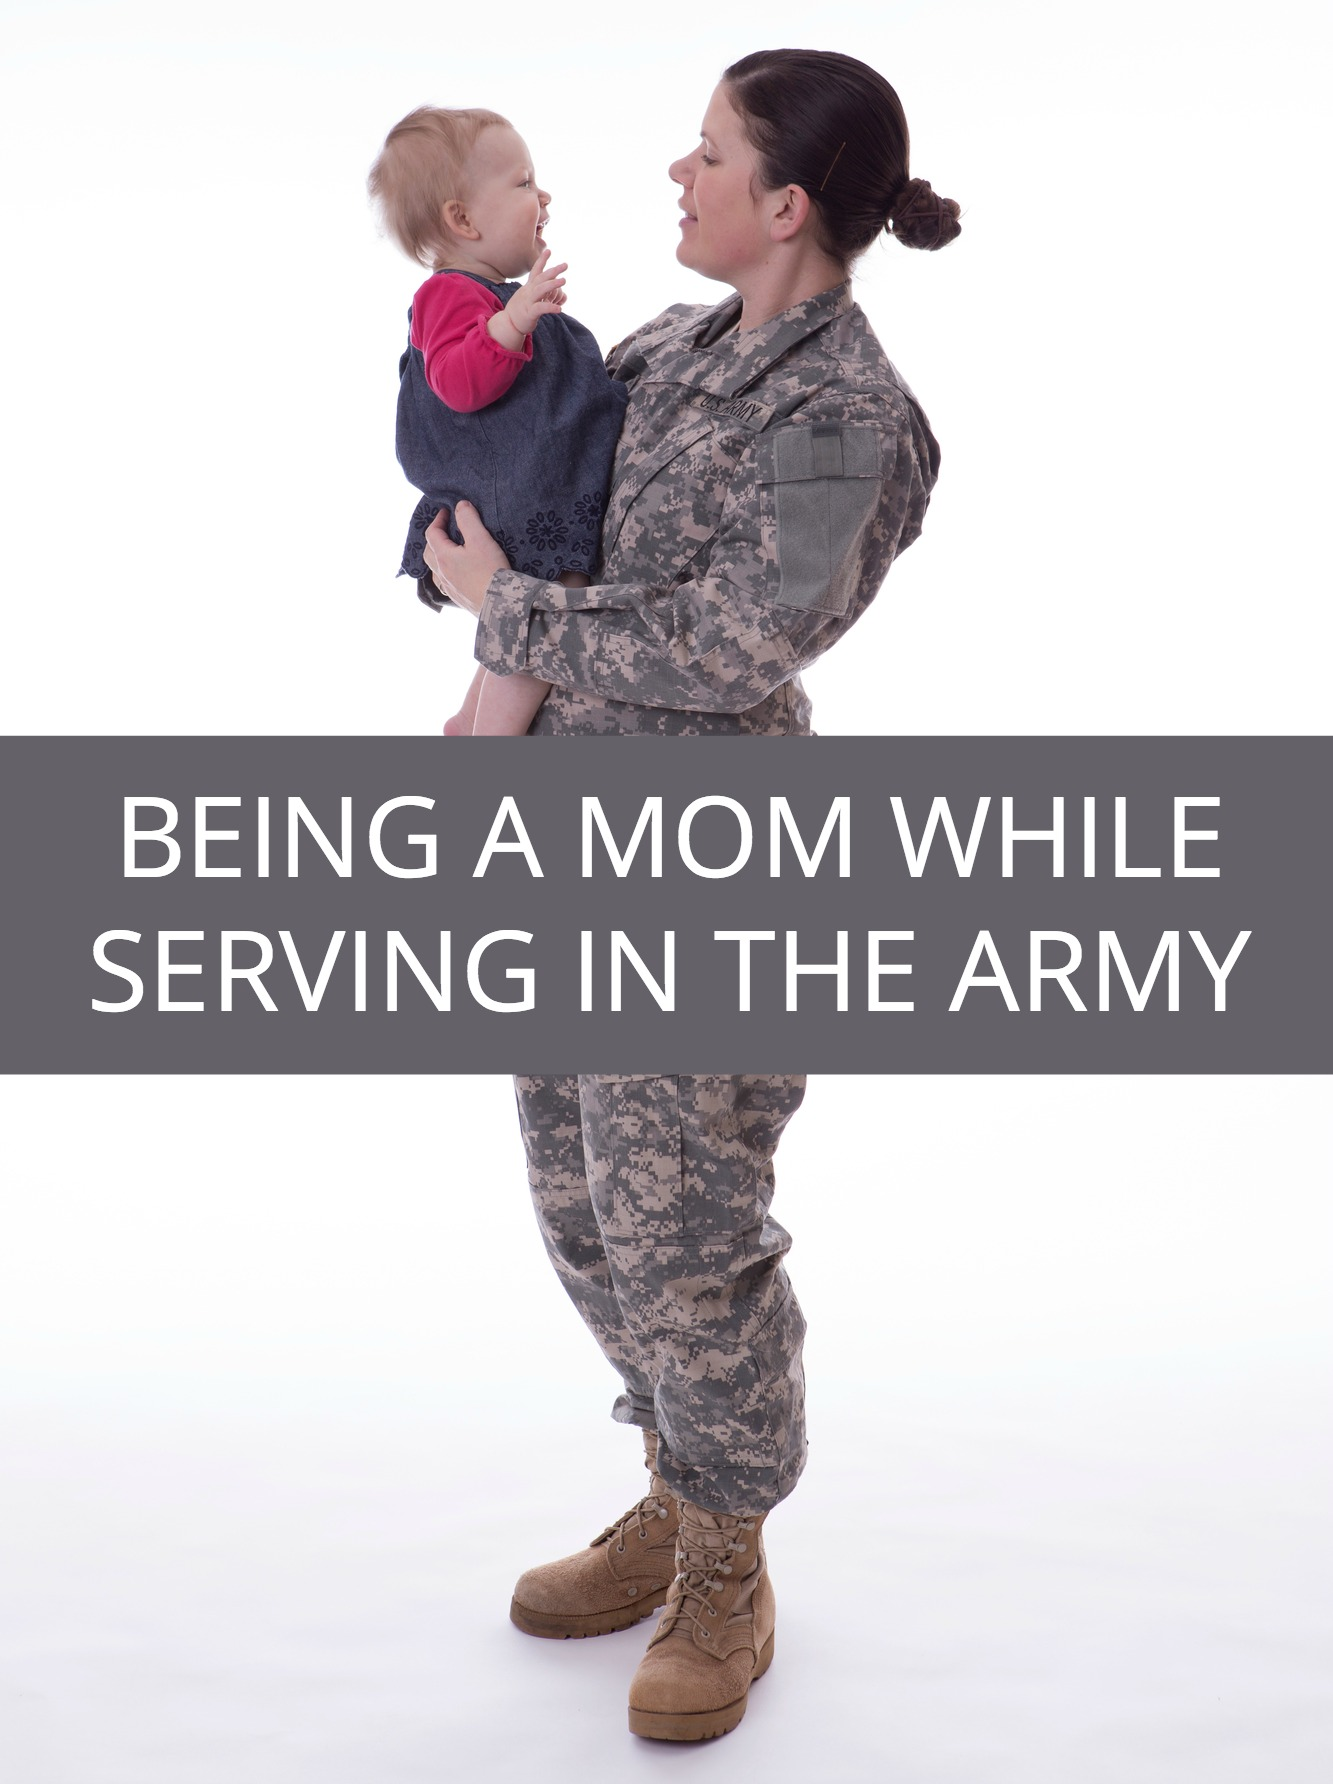 Imagine being the mother of four and being deployed to a war zone as a soldier ... see what life is really like for moms serving on active military duty.